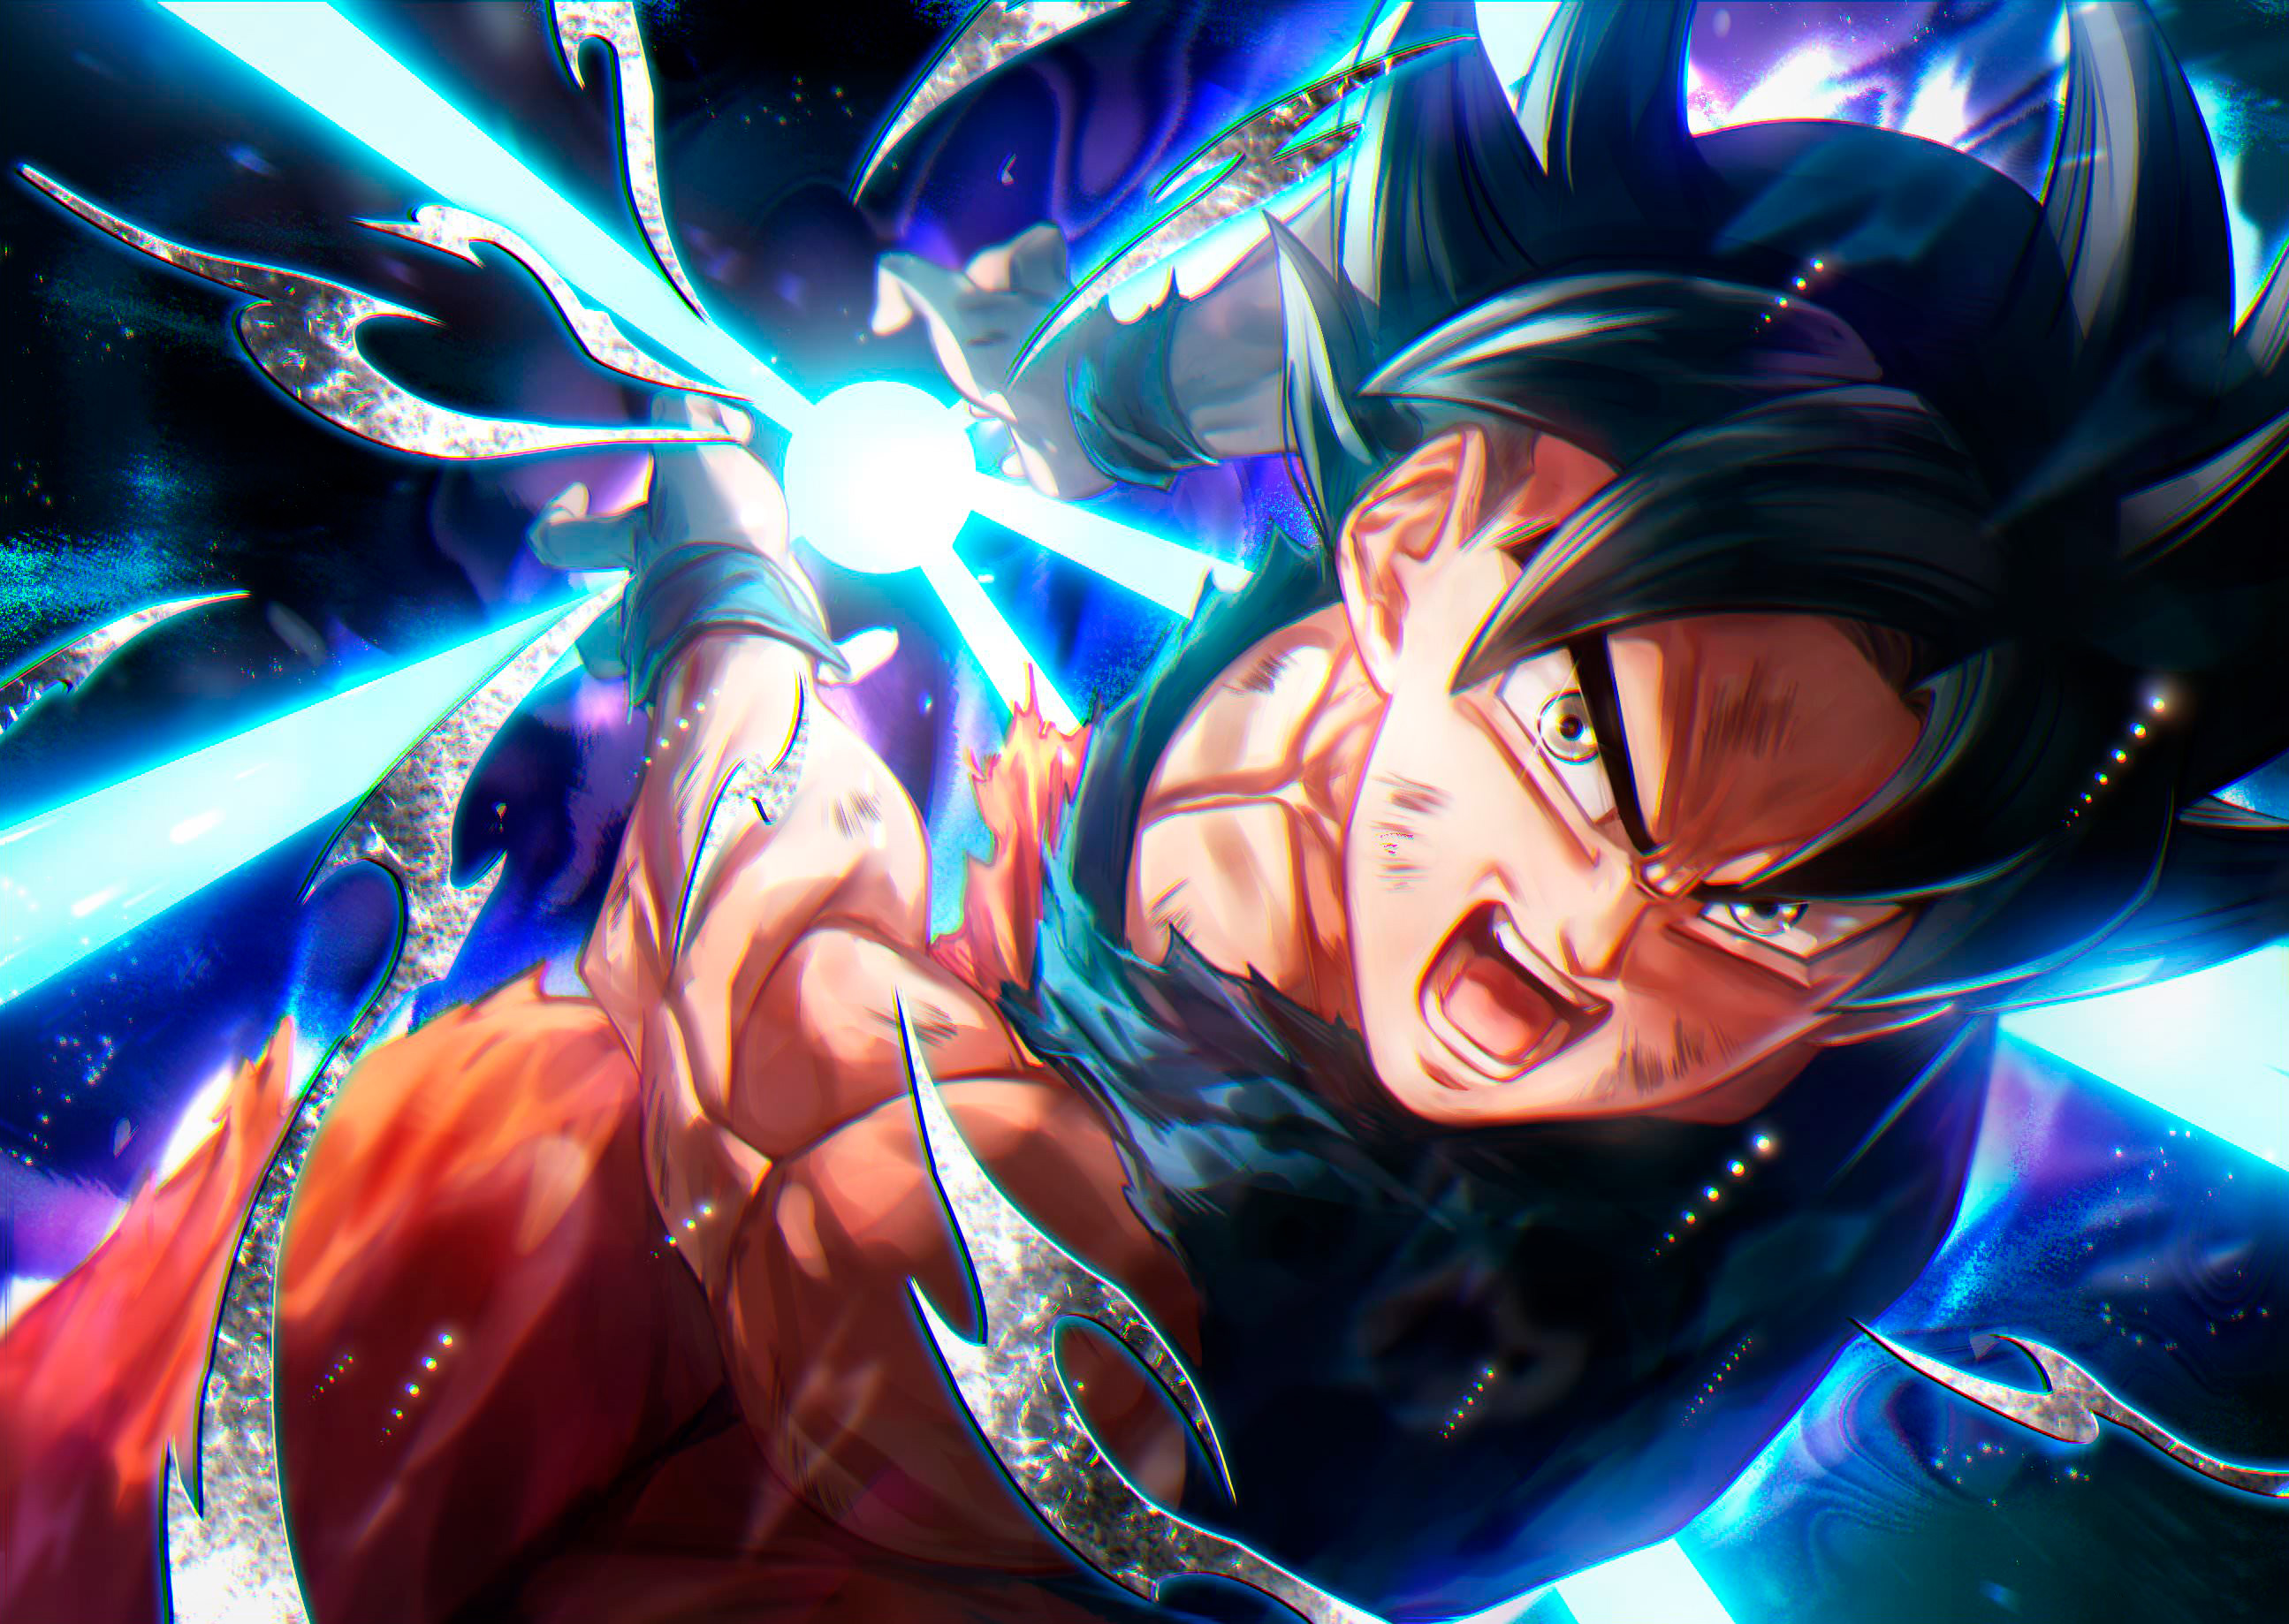 Goku In Dragon Ball Super Anime 4k Hd Anime 4k Wallpapers